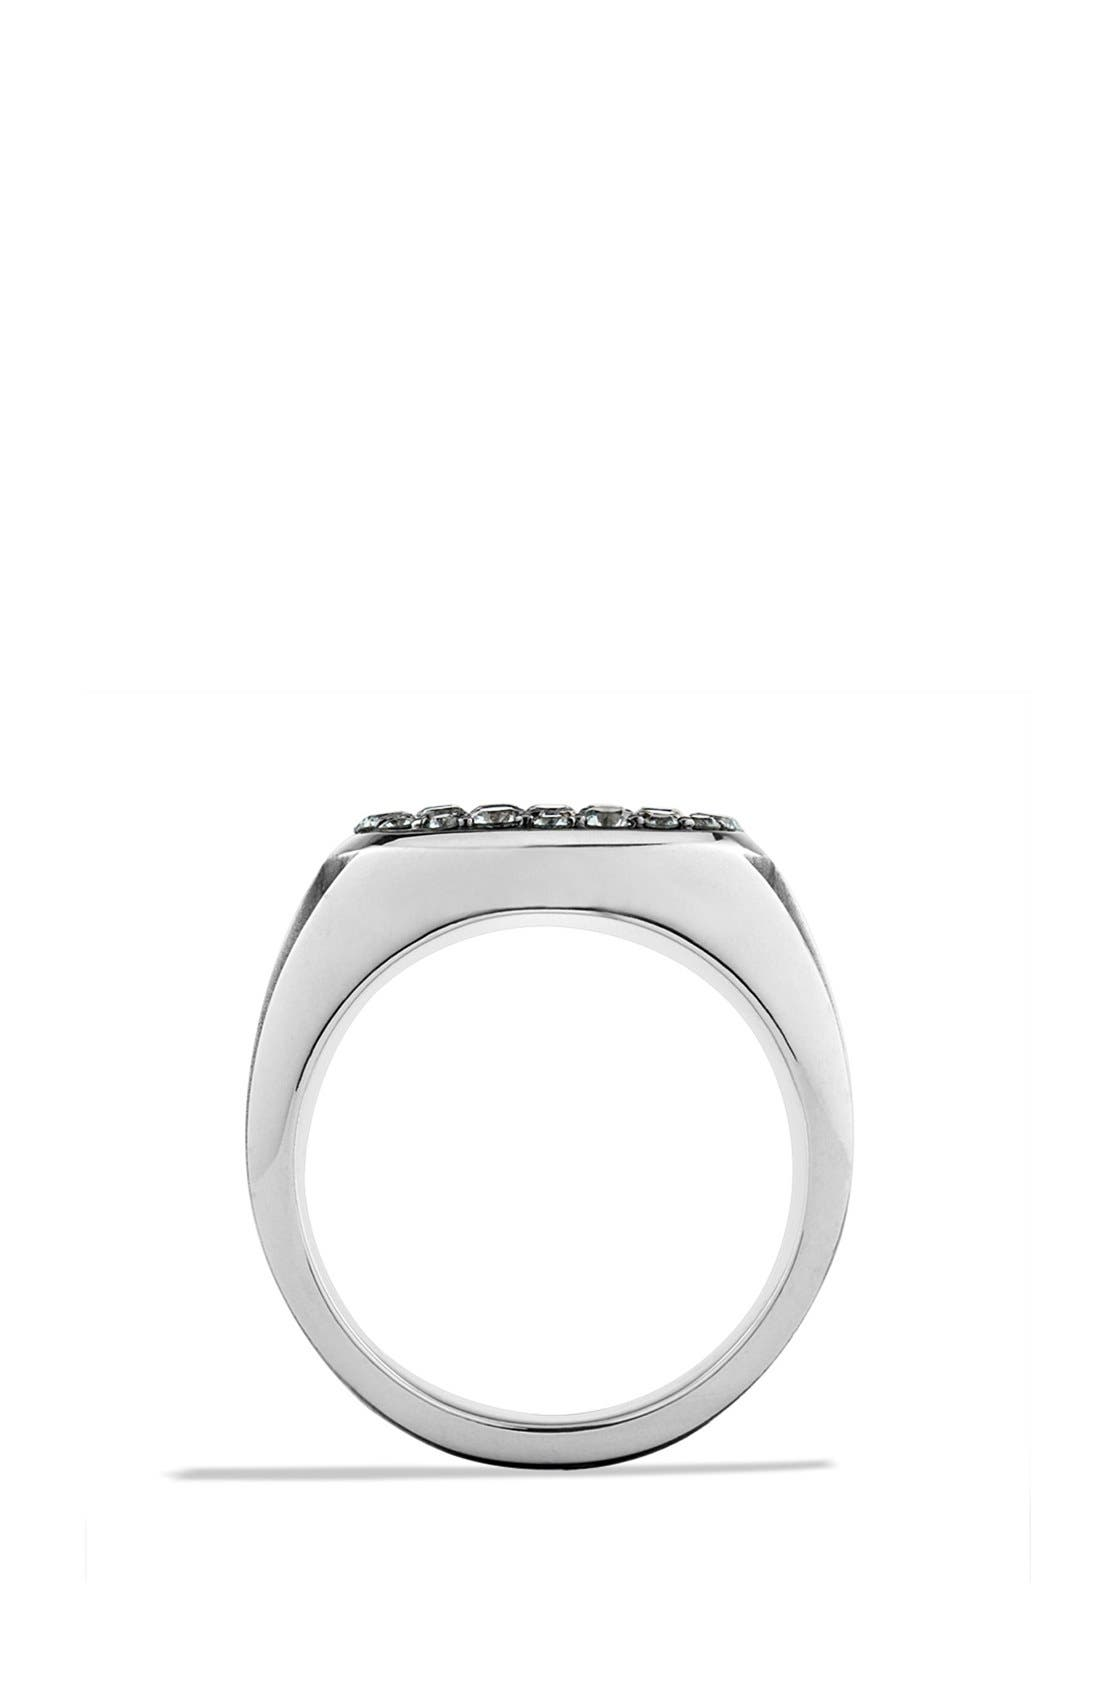 'Knife Edge' Signet Ring with Black Diamonds,                             Alternate thumbnail 4, color,